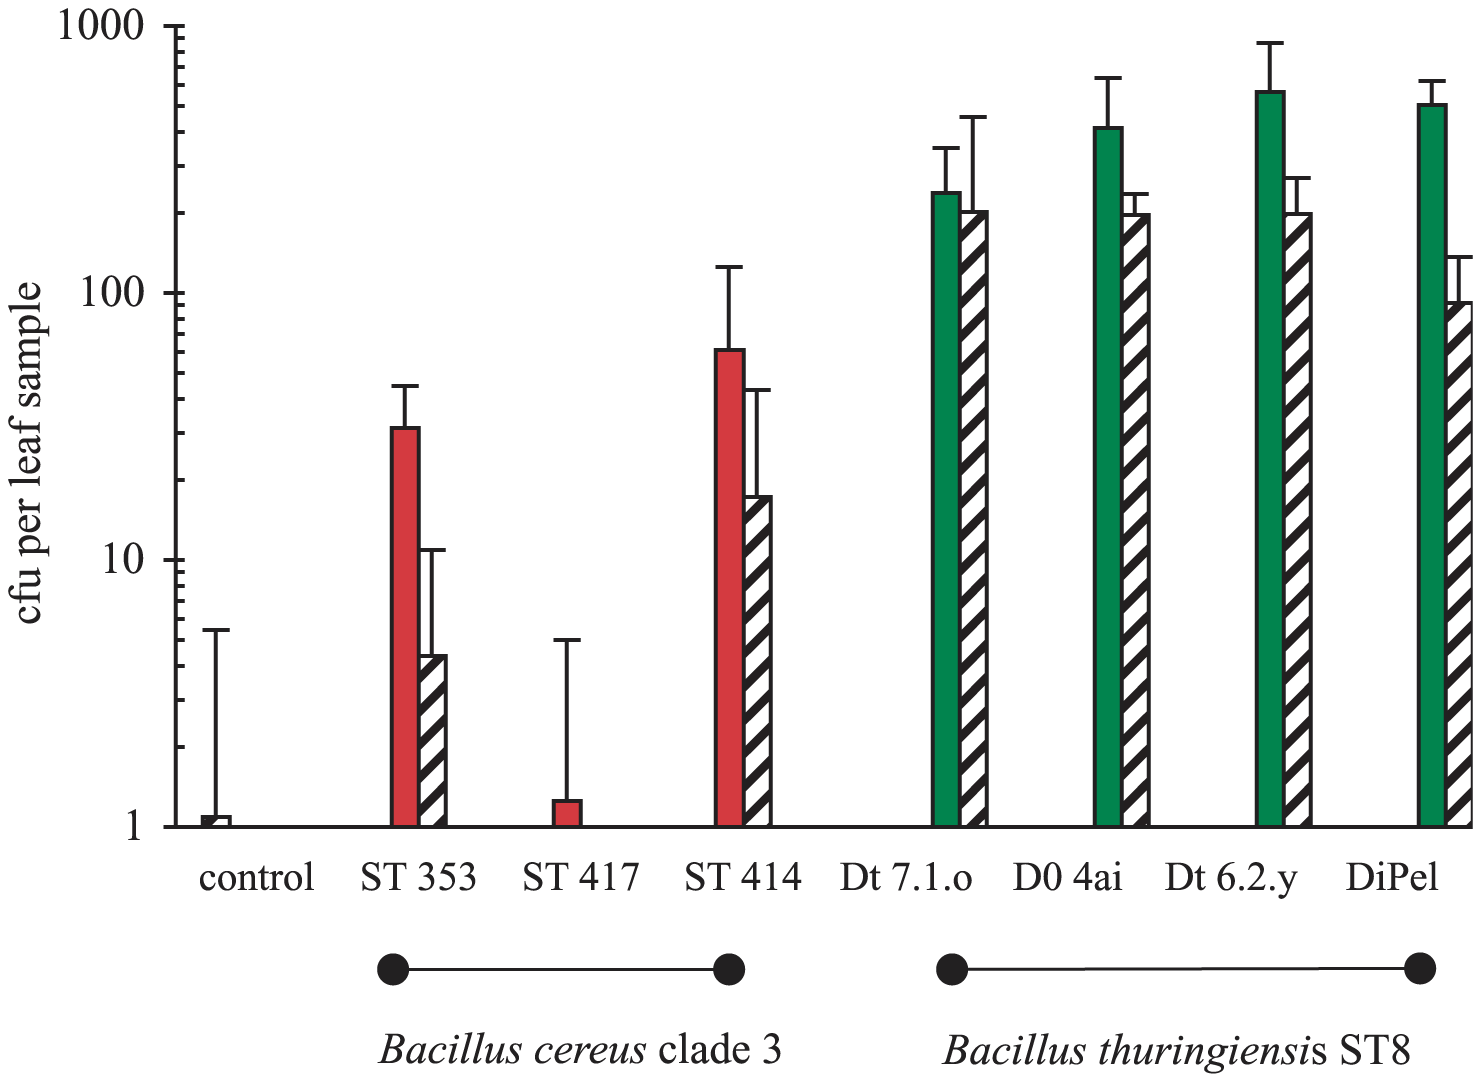 Variation in the ability of <i>B. cereus</i> clade 3 bacteria and <i>B. thuringiensis</i> (ST8) to colonize growing plants from experimentally inoculated soil.